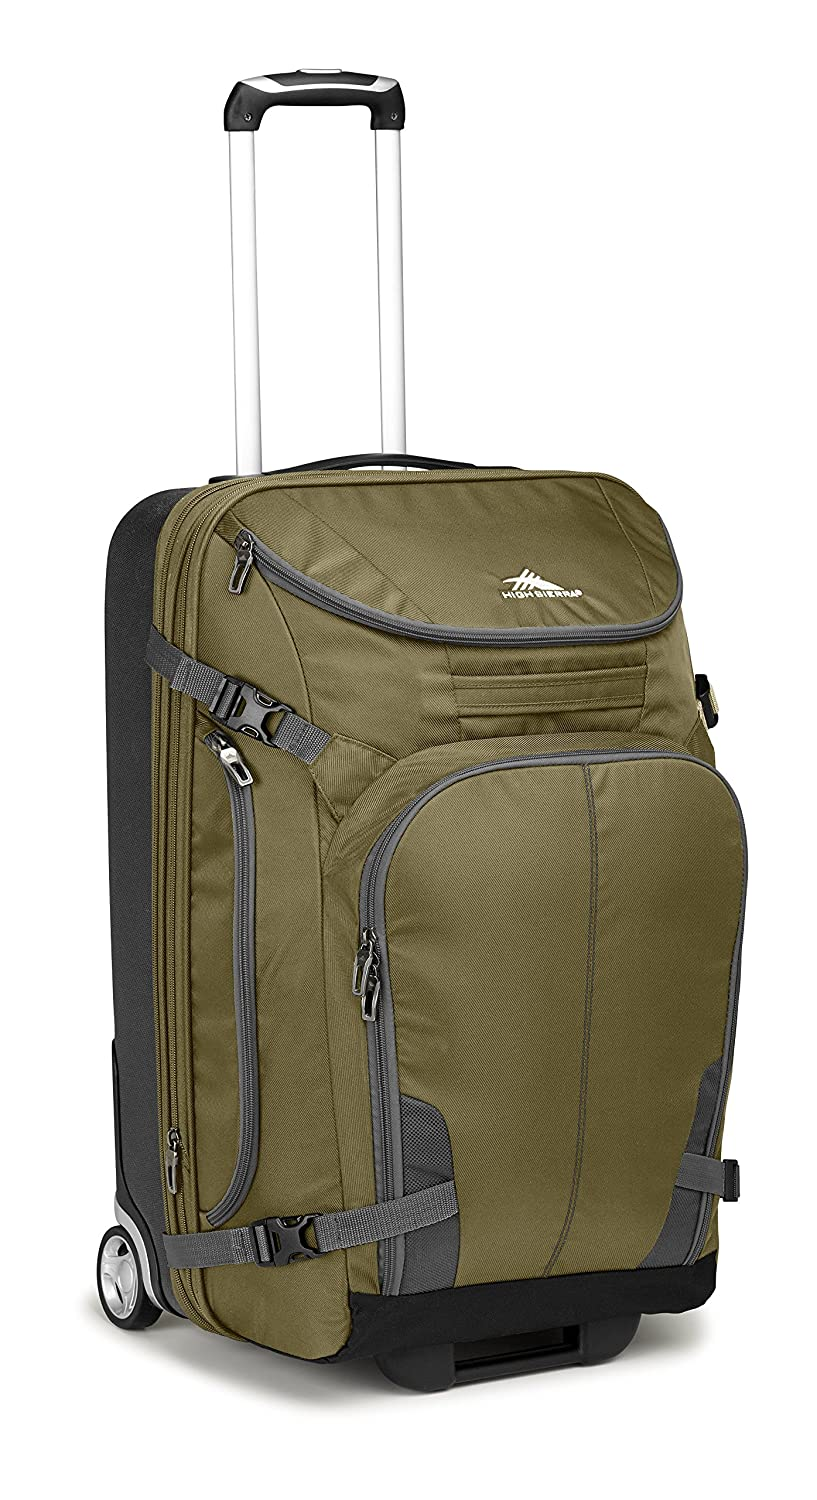 Shop our high quality luggage, totes and travel products. Let's go on an adventure together.